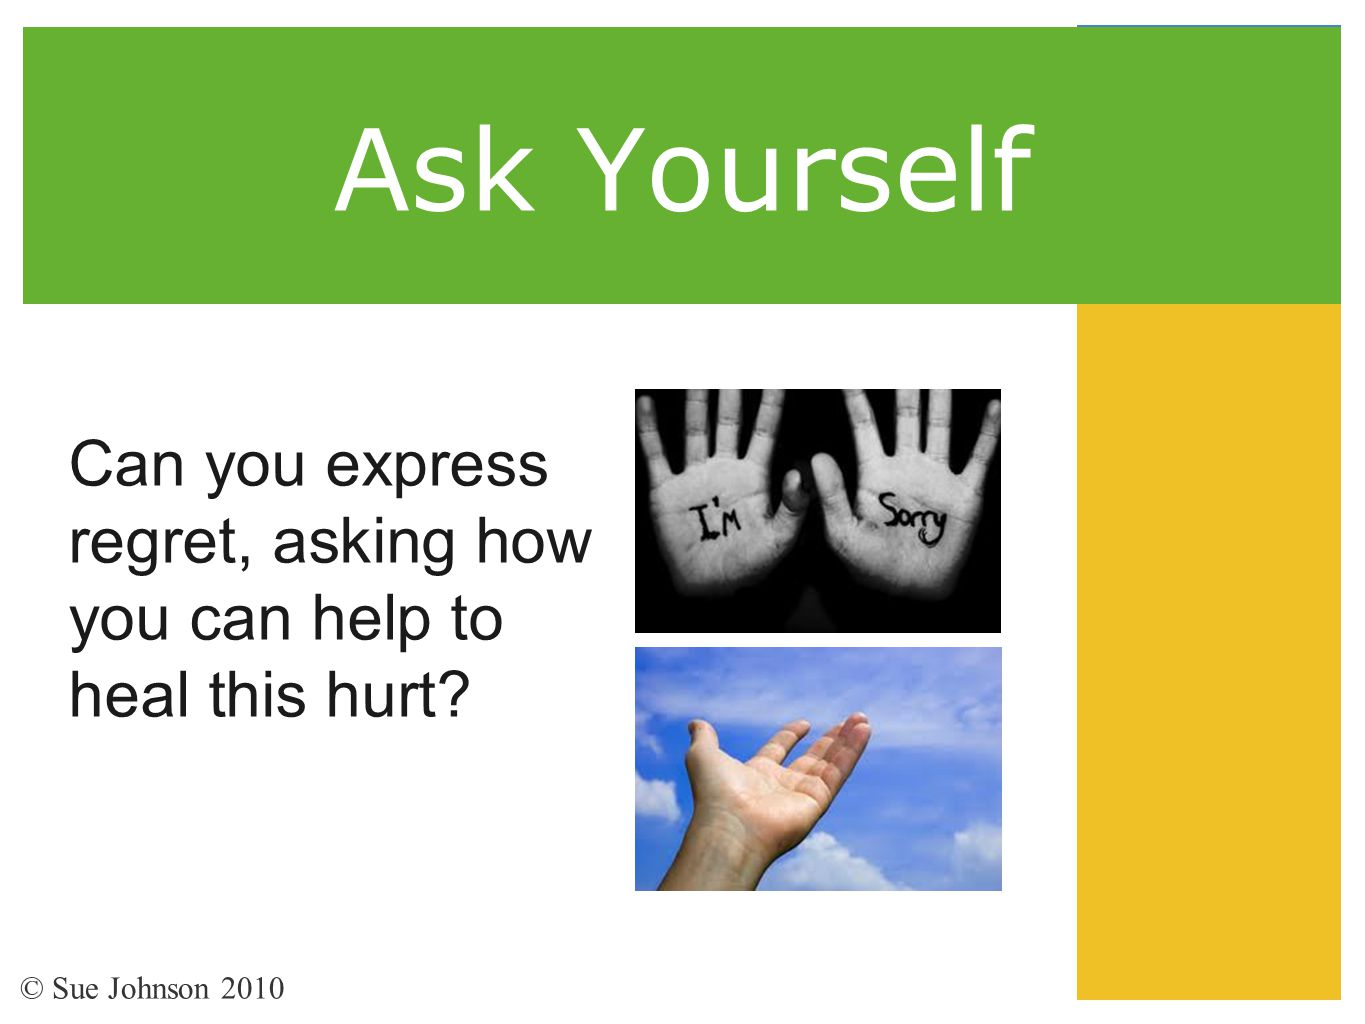 Ask Yourself Can you express regret, asking how you can help to heal this hurt.